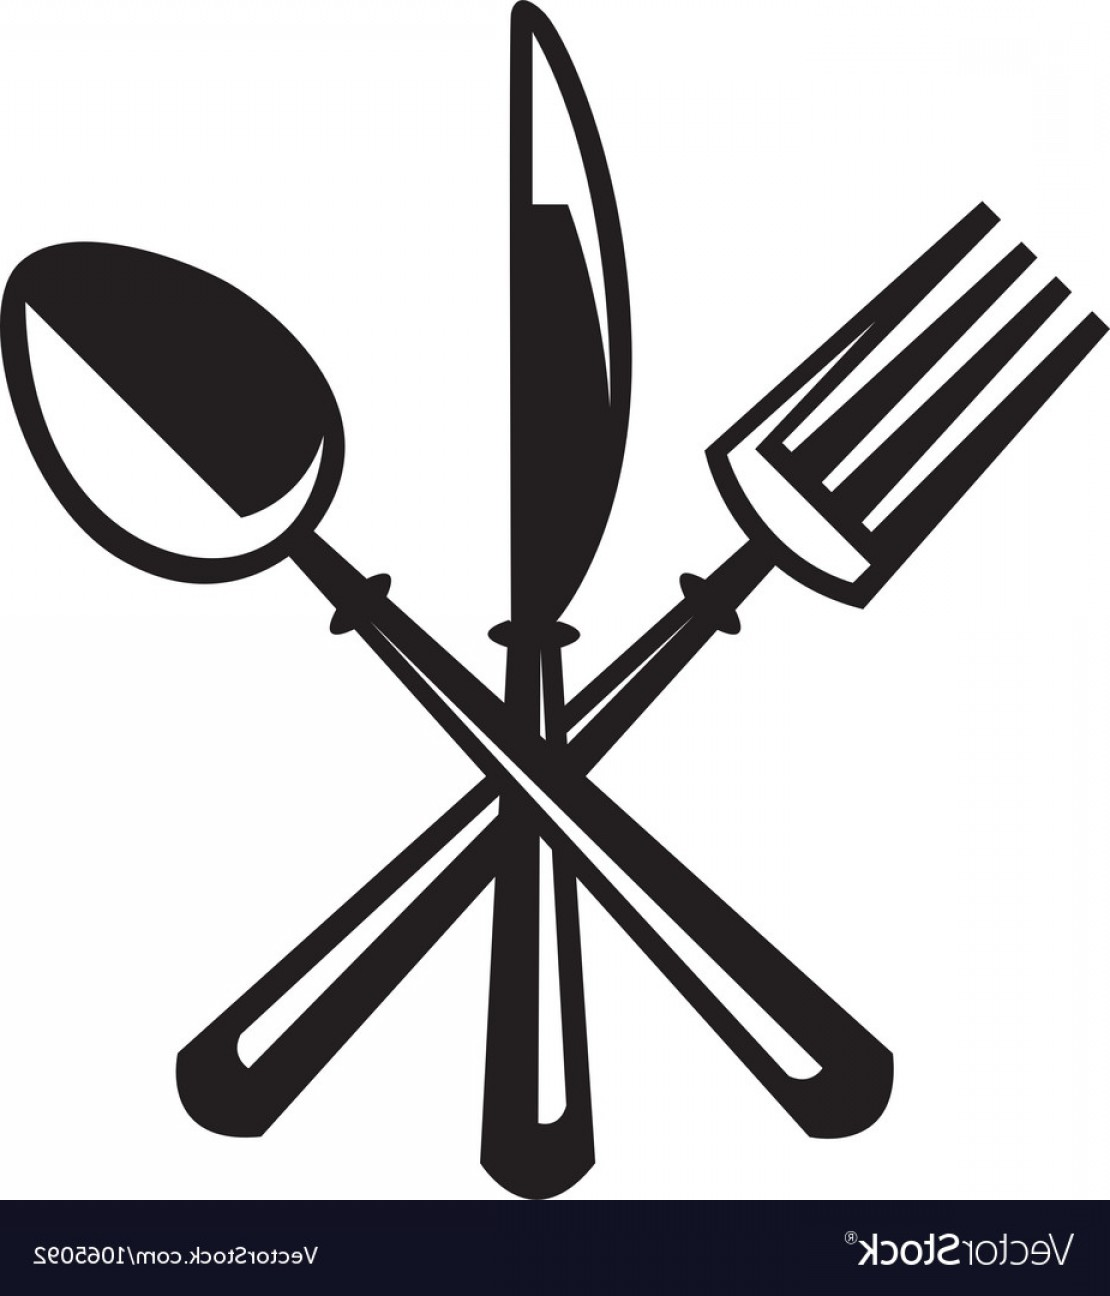 1110x1296 Best Knives Forks And Spoons Vector Image Collection